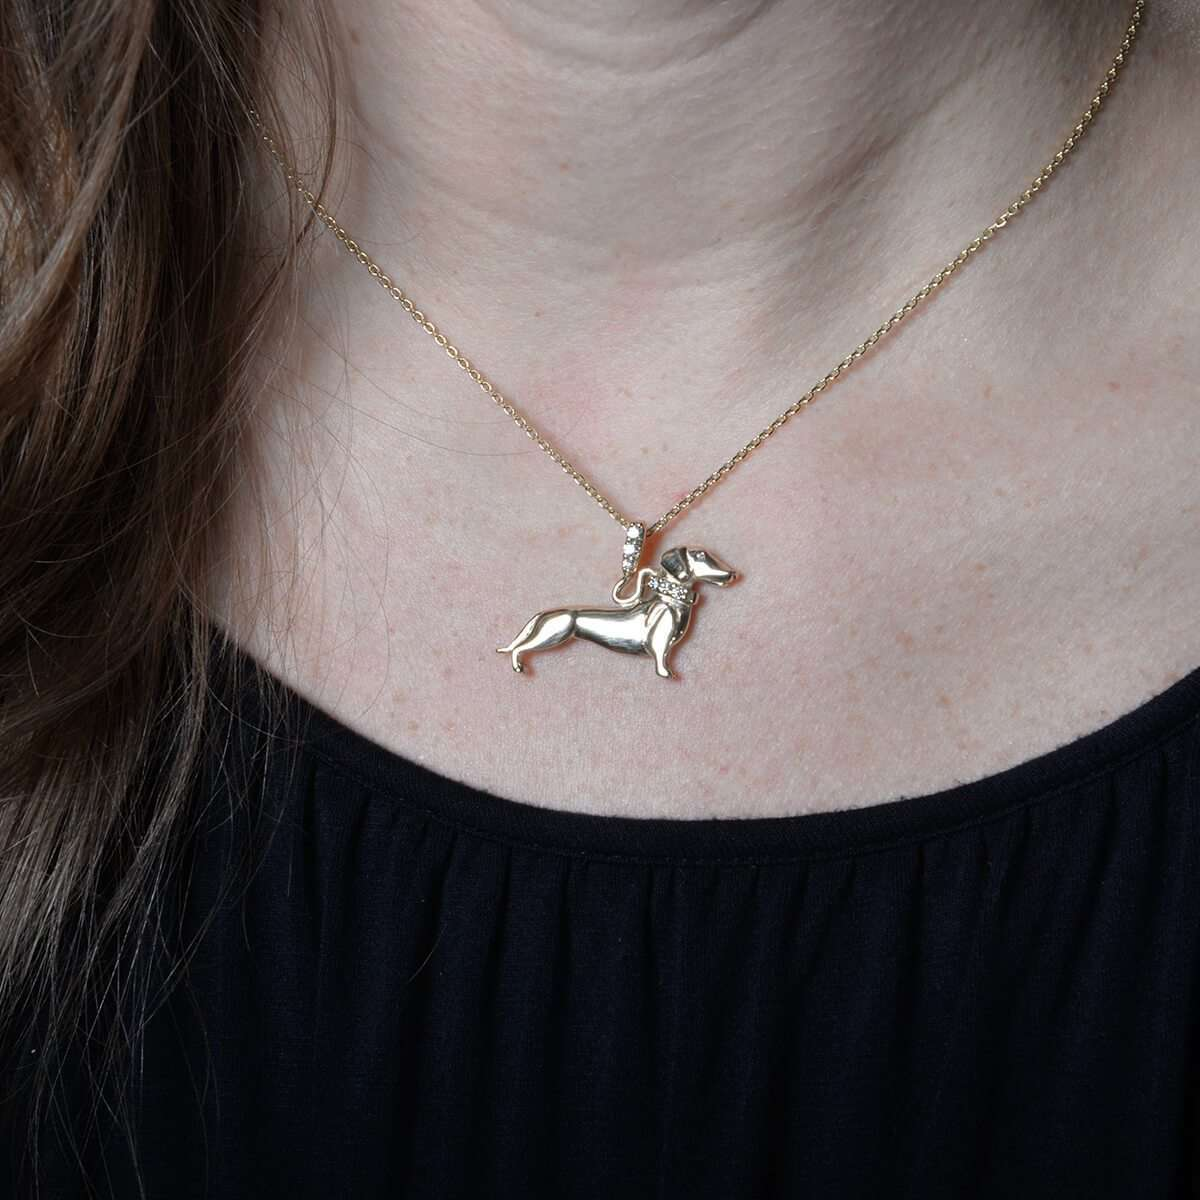 14kt Yg Dachshund With Diamond Leash-Donna Pizarro Designs-JewelStreet US